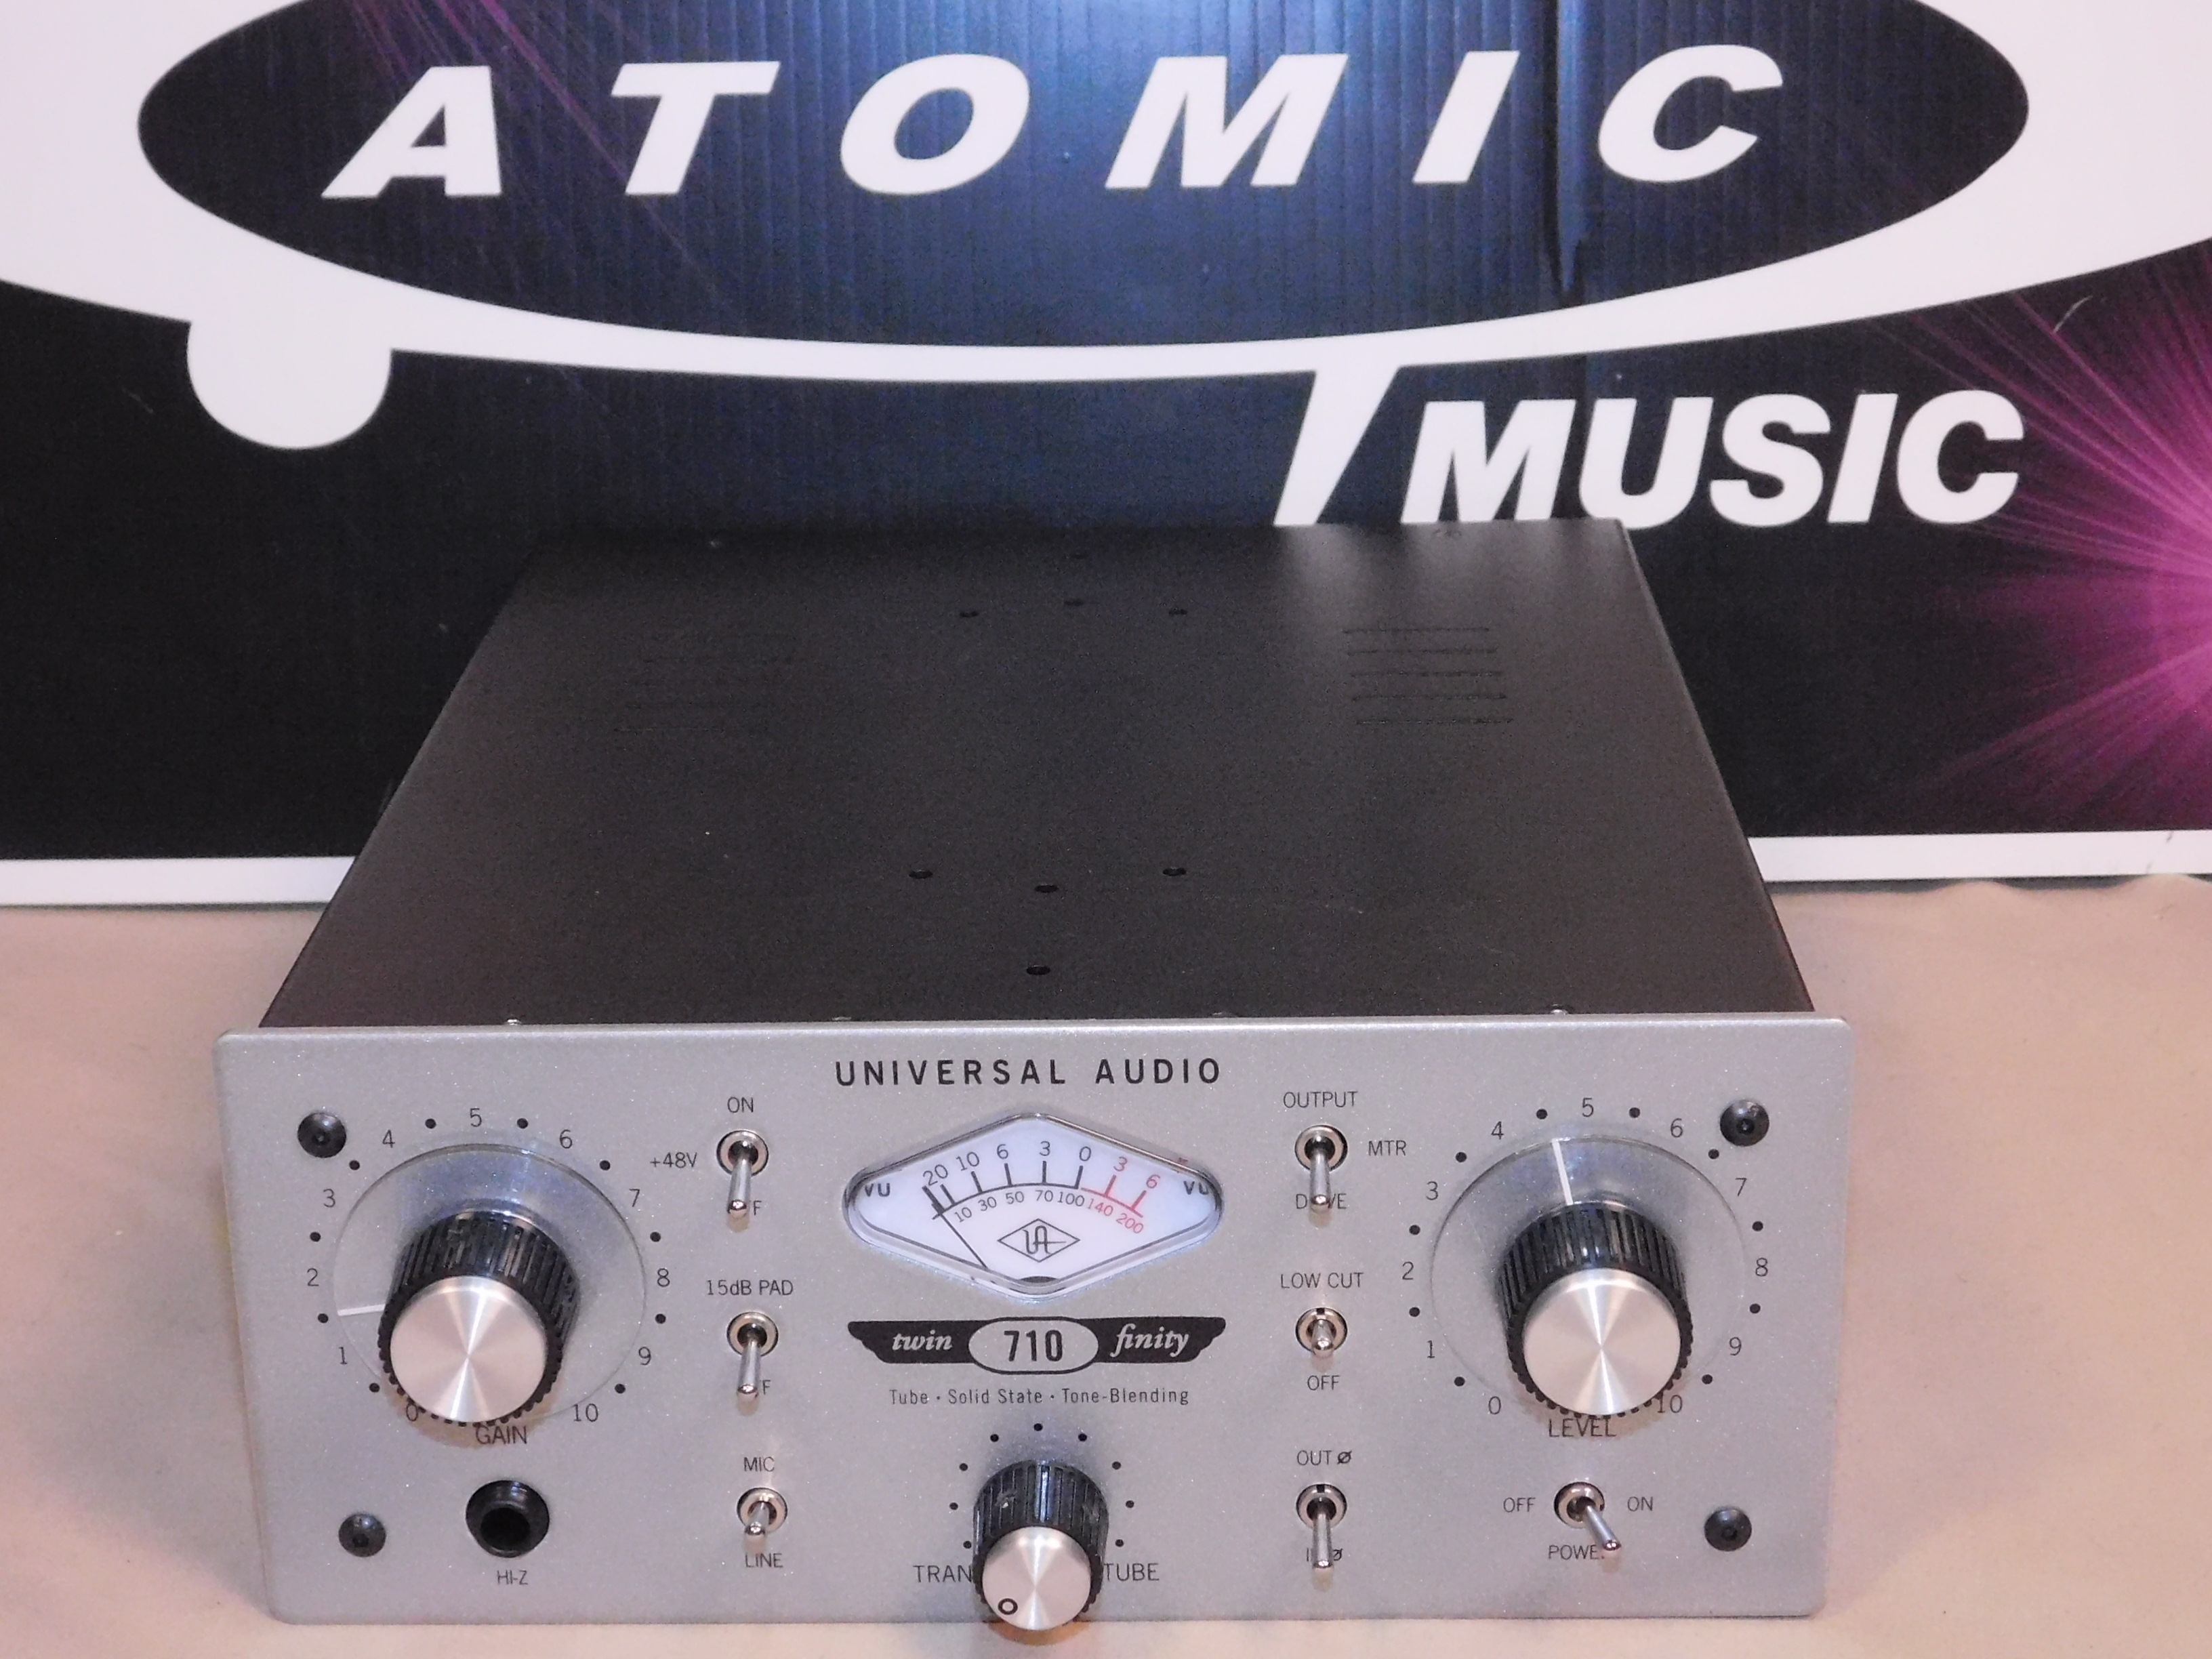 UNIVERSAL AUDIO 710 TWIN-FINITY TUBE/SOLID STATE PREAMP